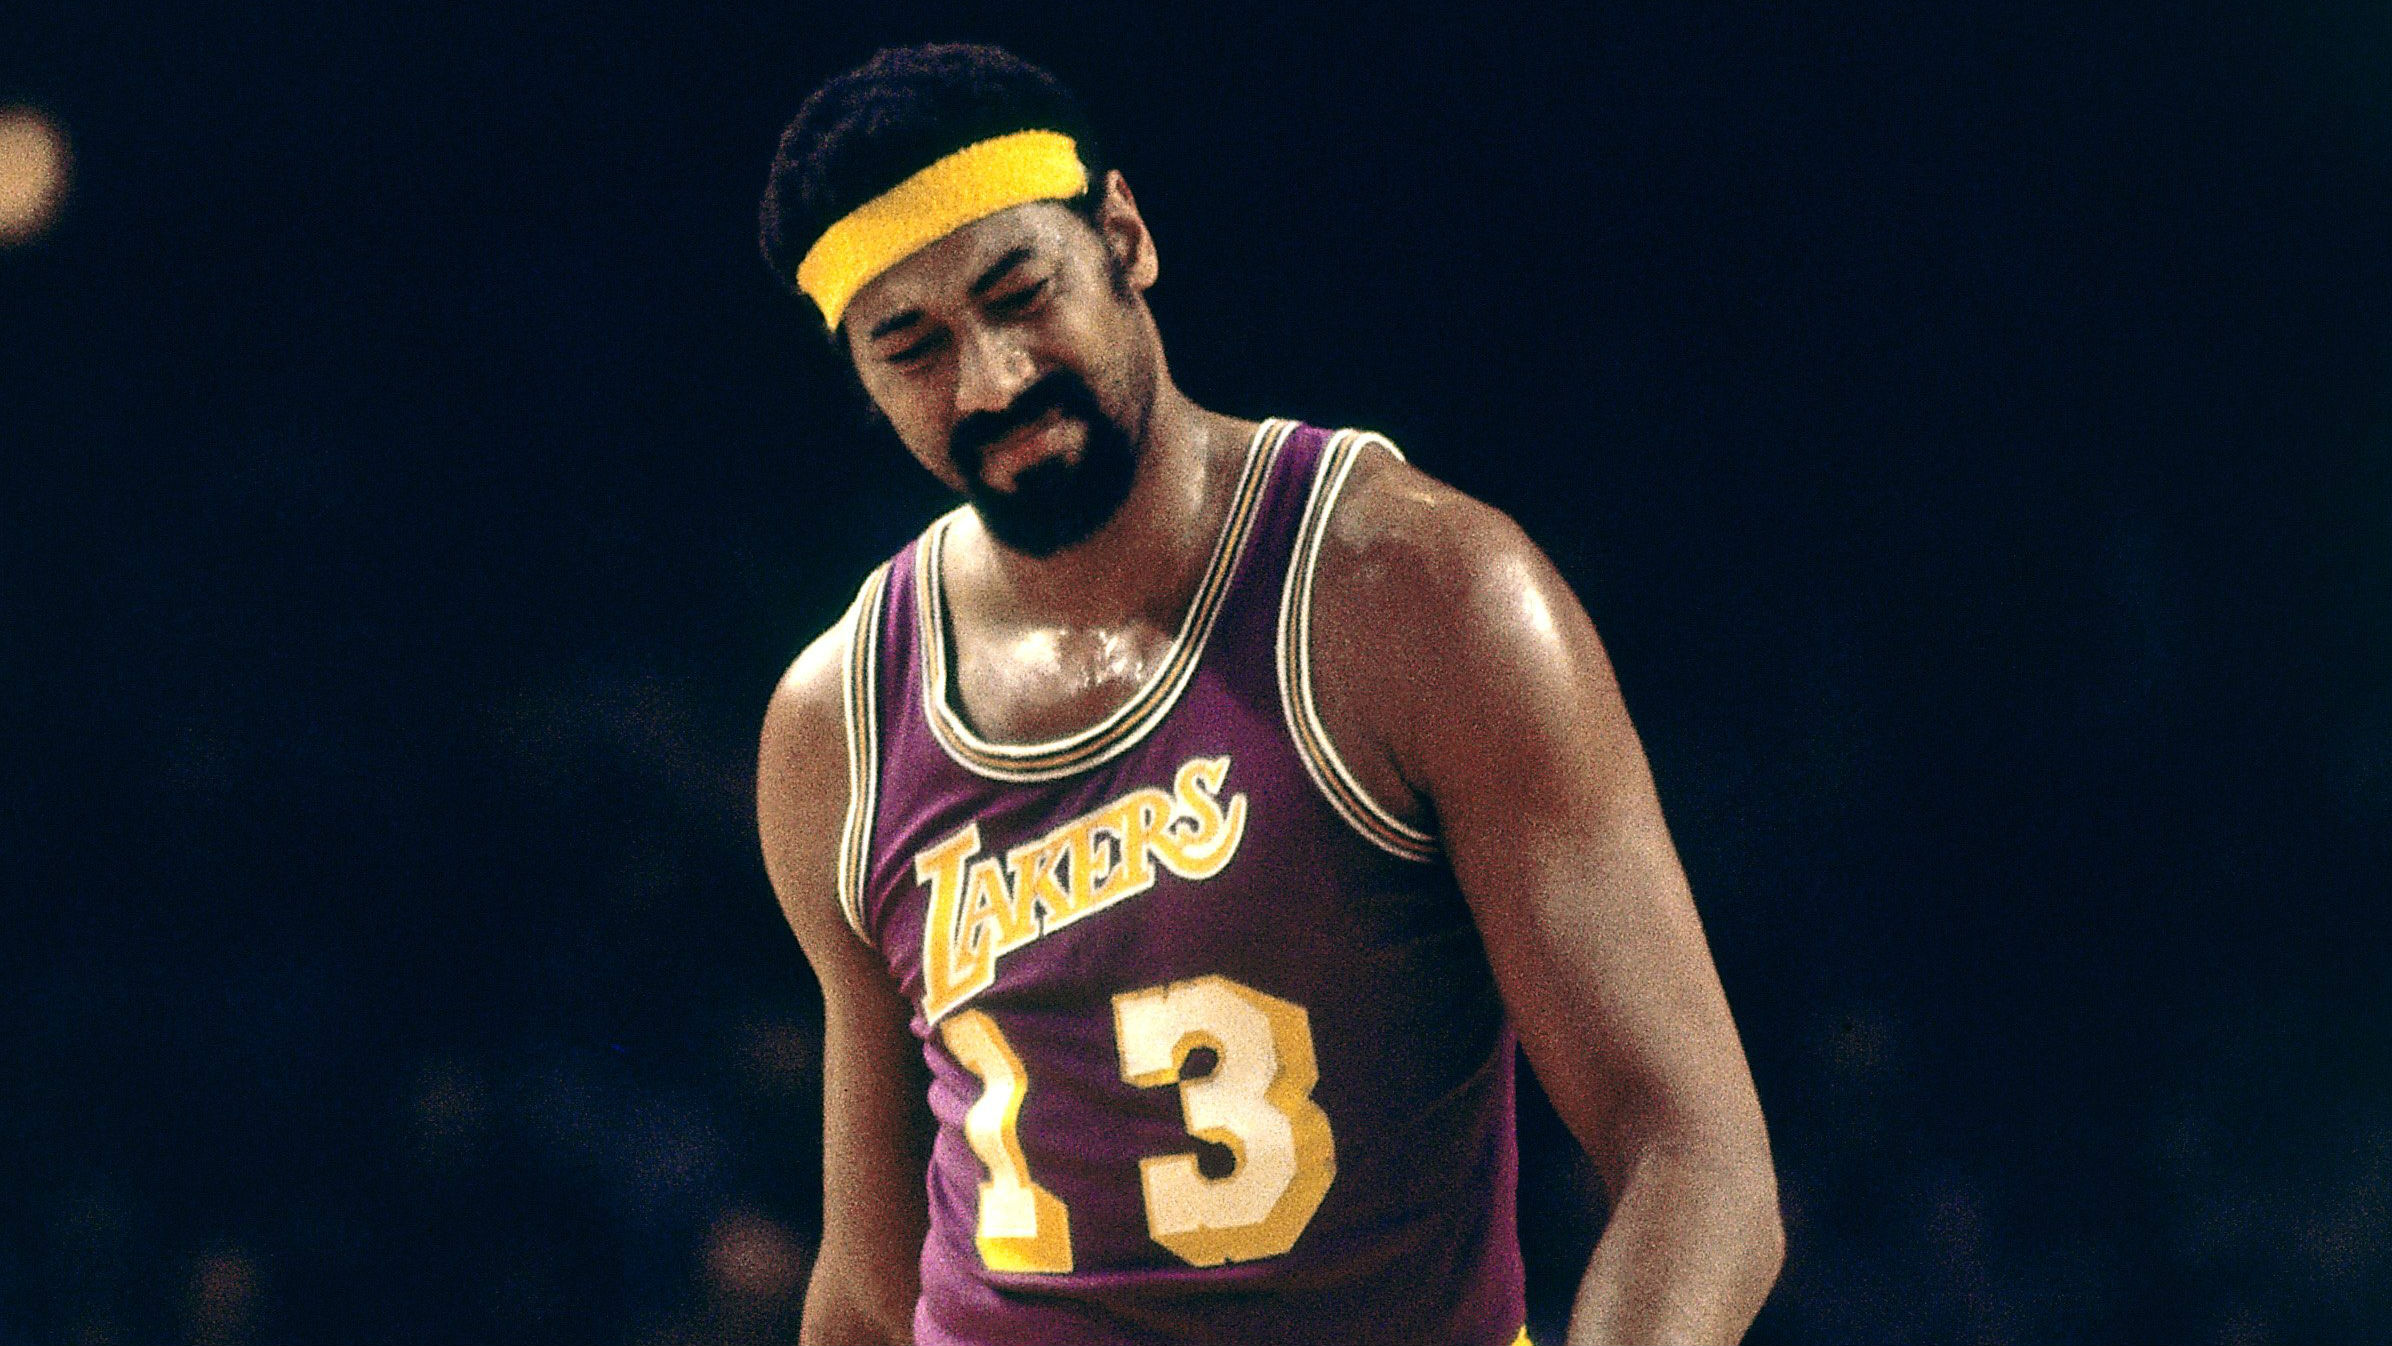 Gallery: Remembering Wilt Chamberlain | NBA